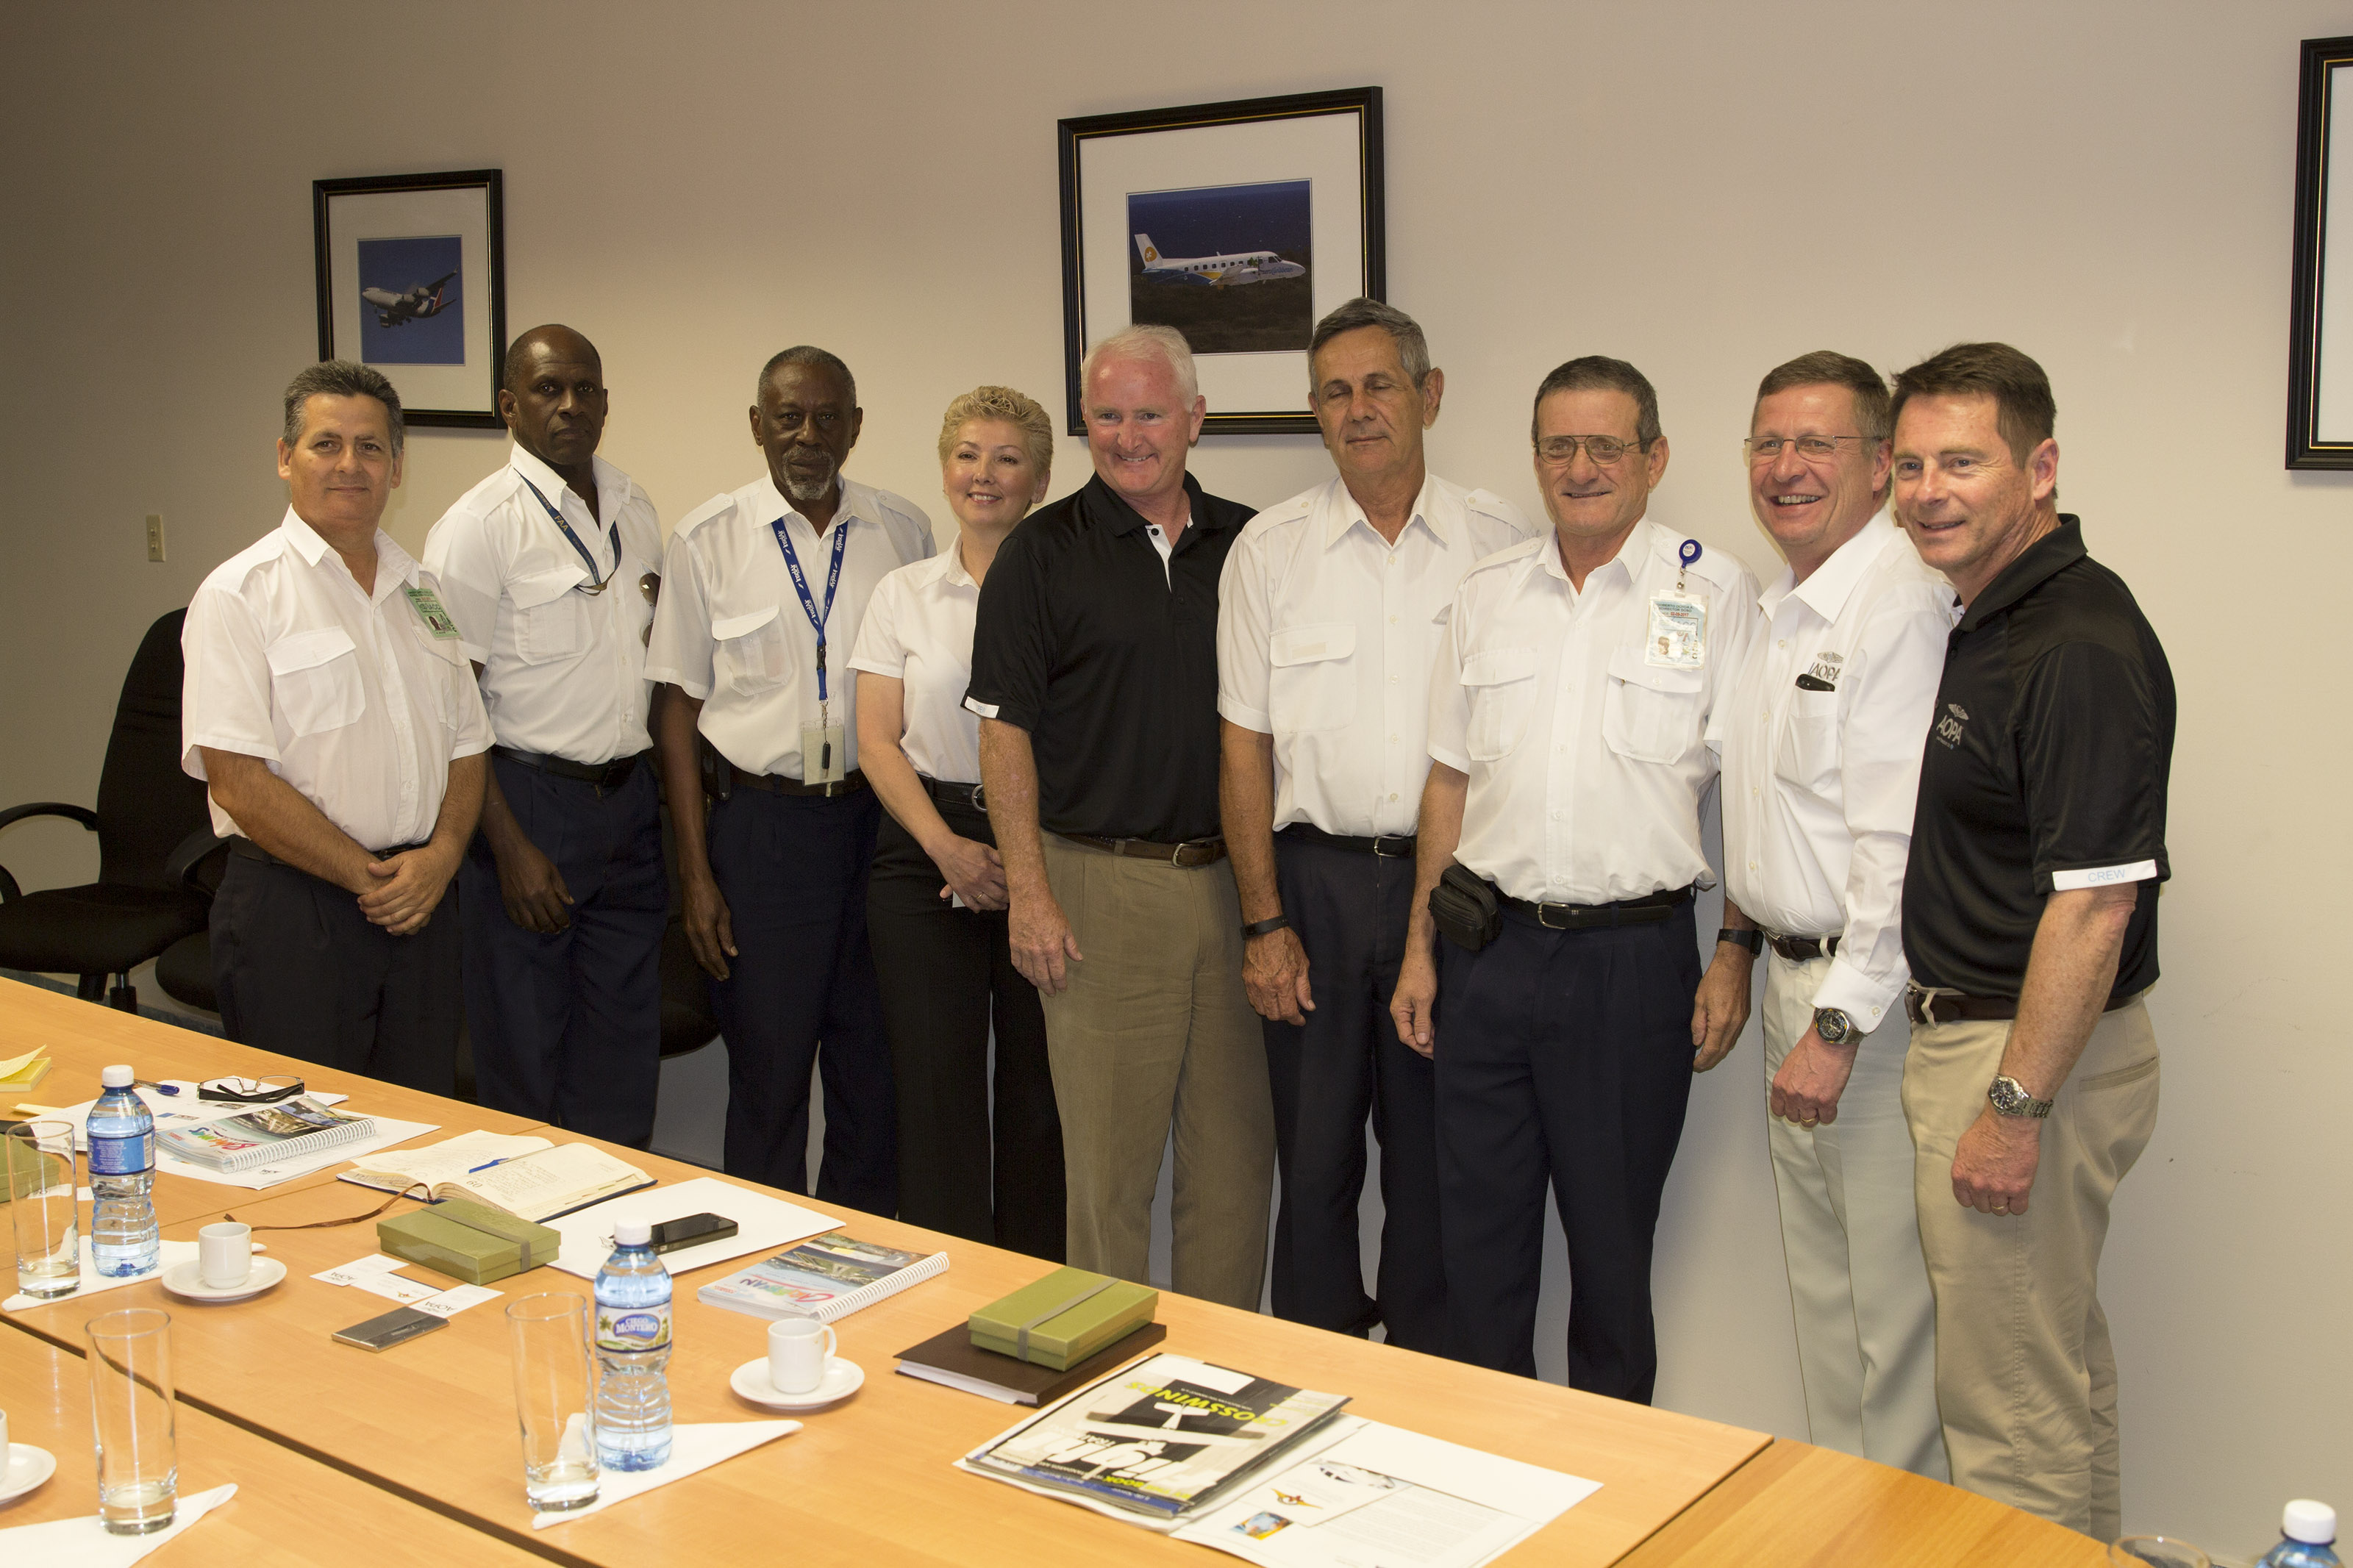 Cuban aviation authorities warmly received AOPA senior leaders, including AOPA President Mark Baker (center), to discuss ways to further open the nation to general aviation activity.